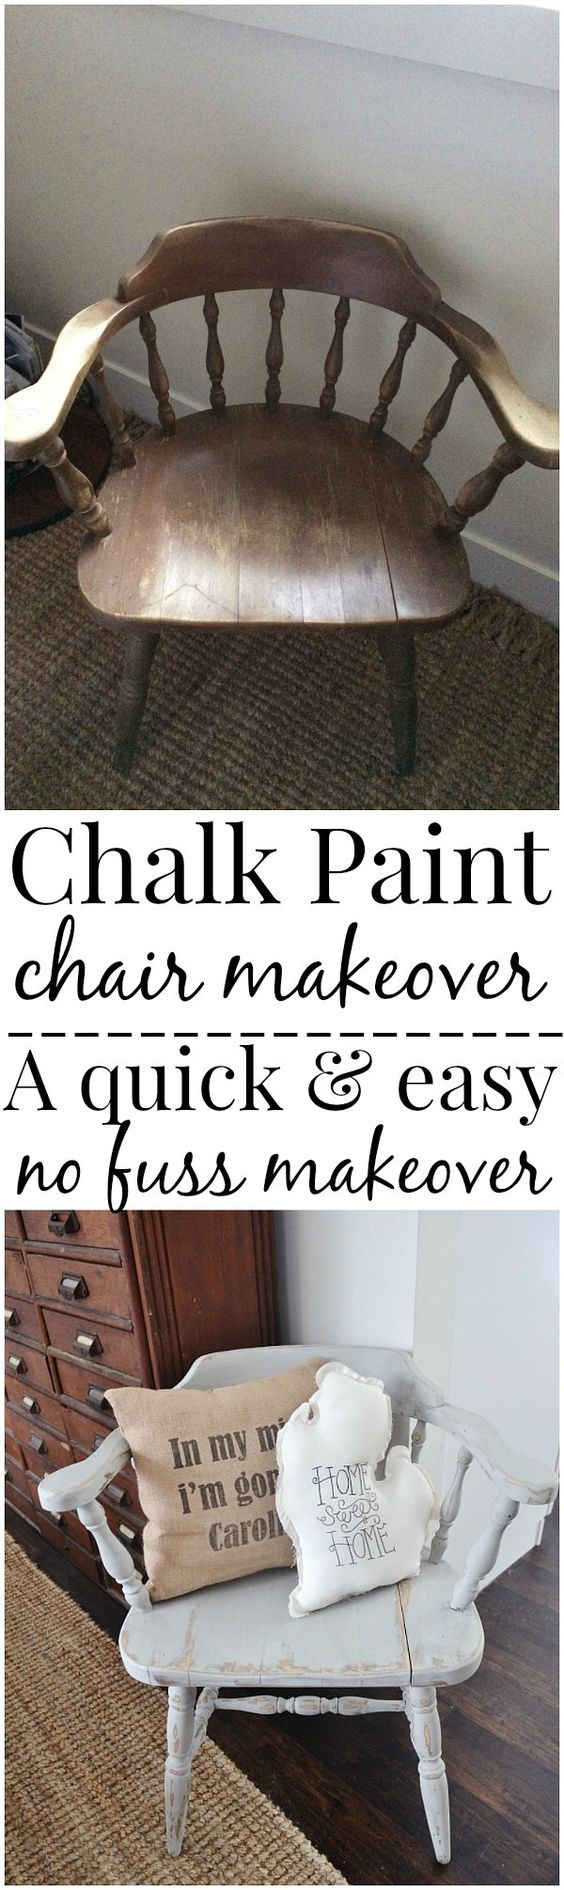 Super Easy Way To Paint Furniture With No Mess No Fuss A Must Pin To Make Furniture That Is